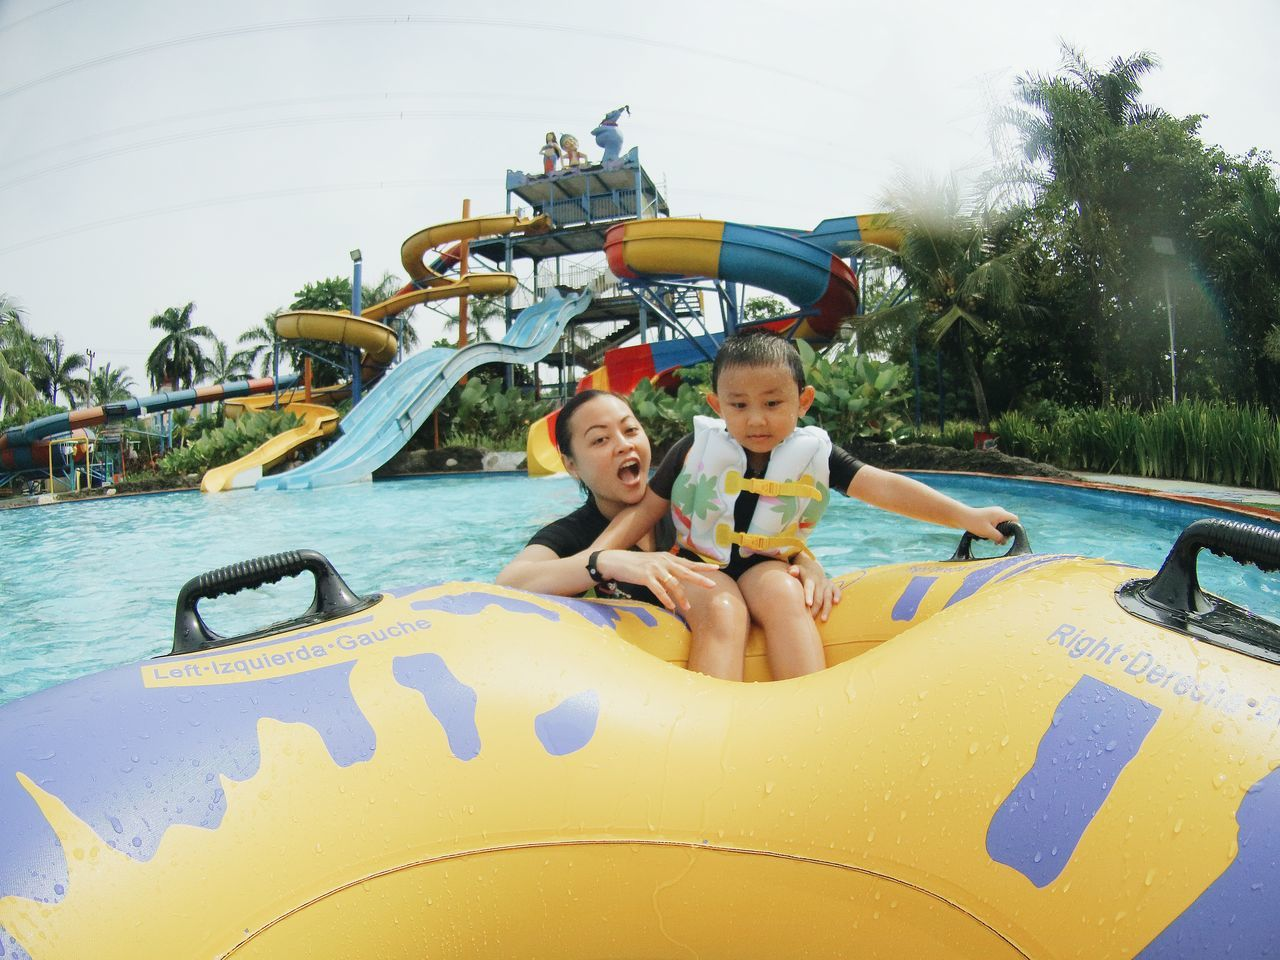 Two People Child Swimming Pool Vacations Fun Togetherness Day Happiness Inflatable  Outdoors Amusement Park People Tree Sky Water Slide Adult Swimming Waterpark Real People